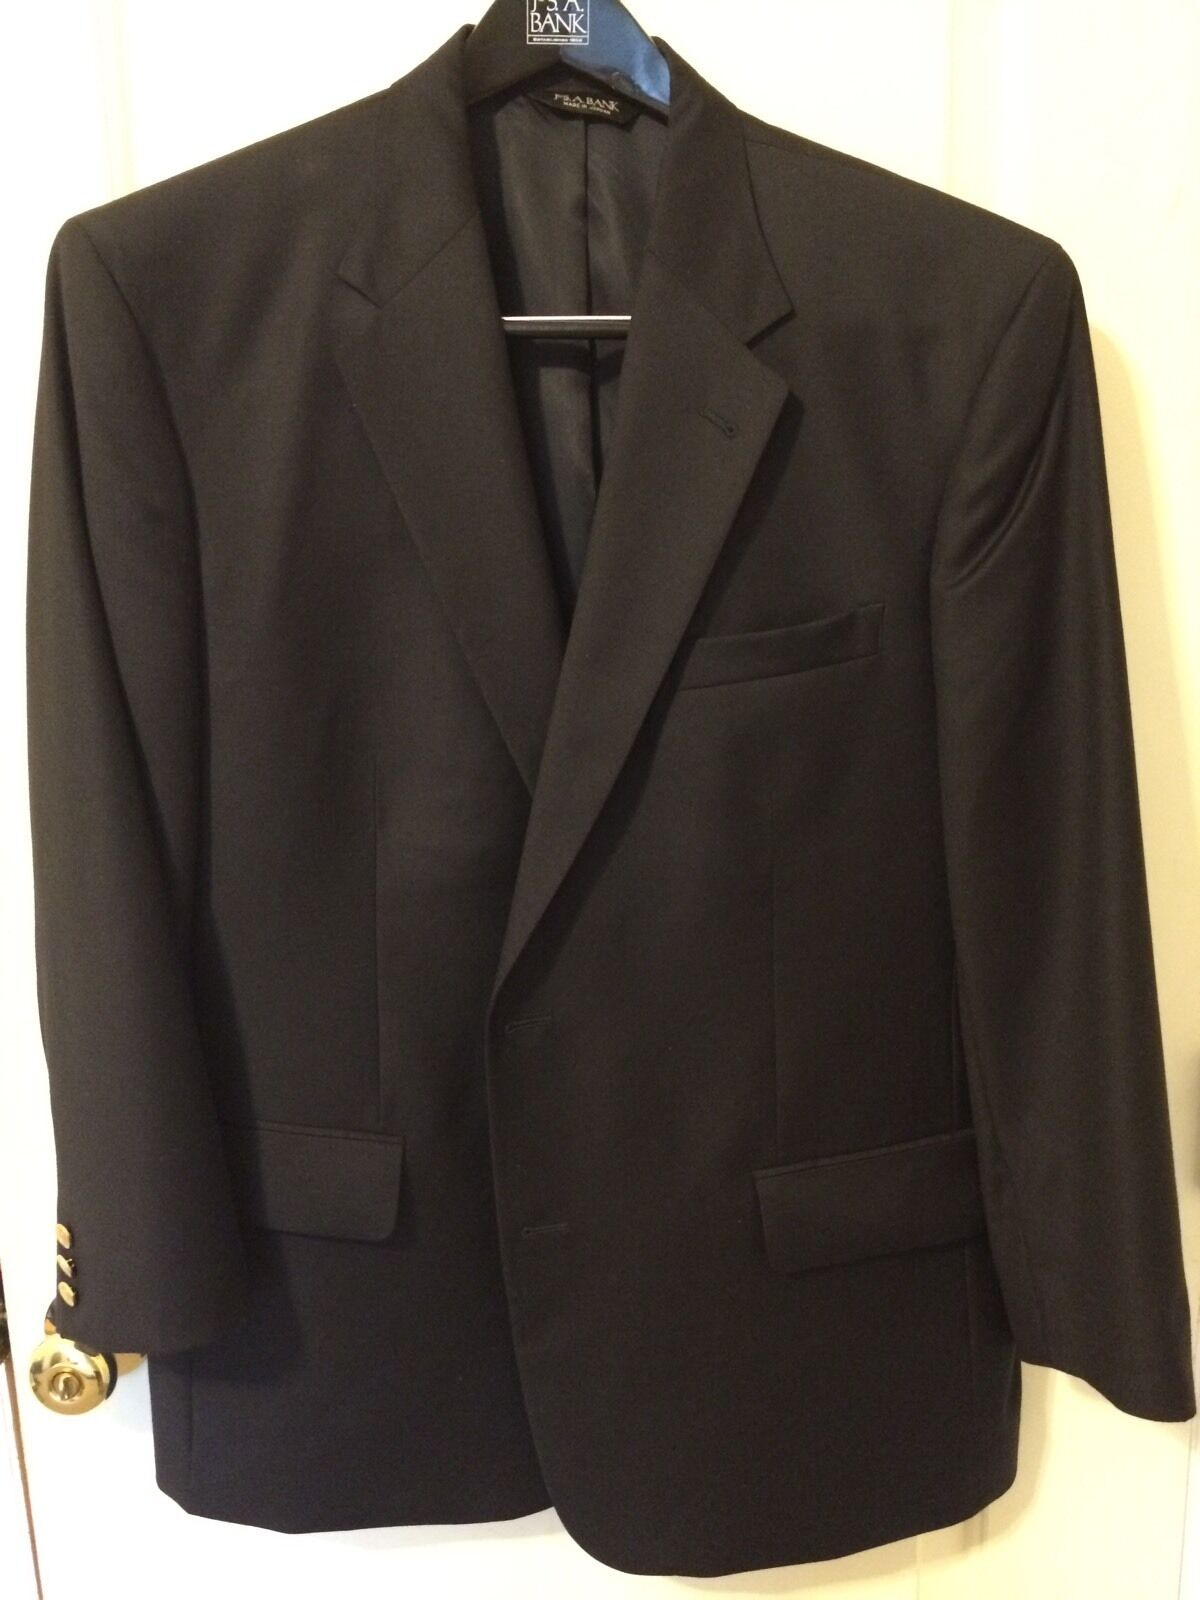 Men's Signature 100% Wool Navy Blazer